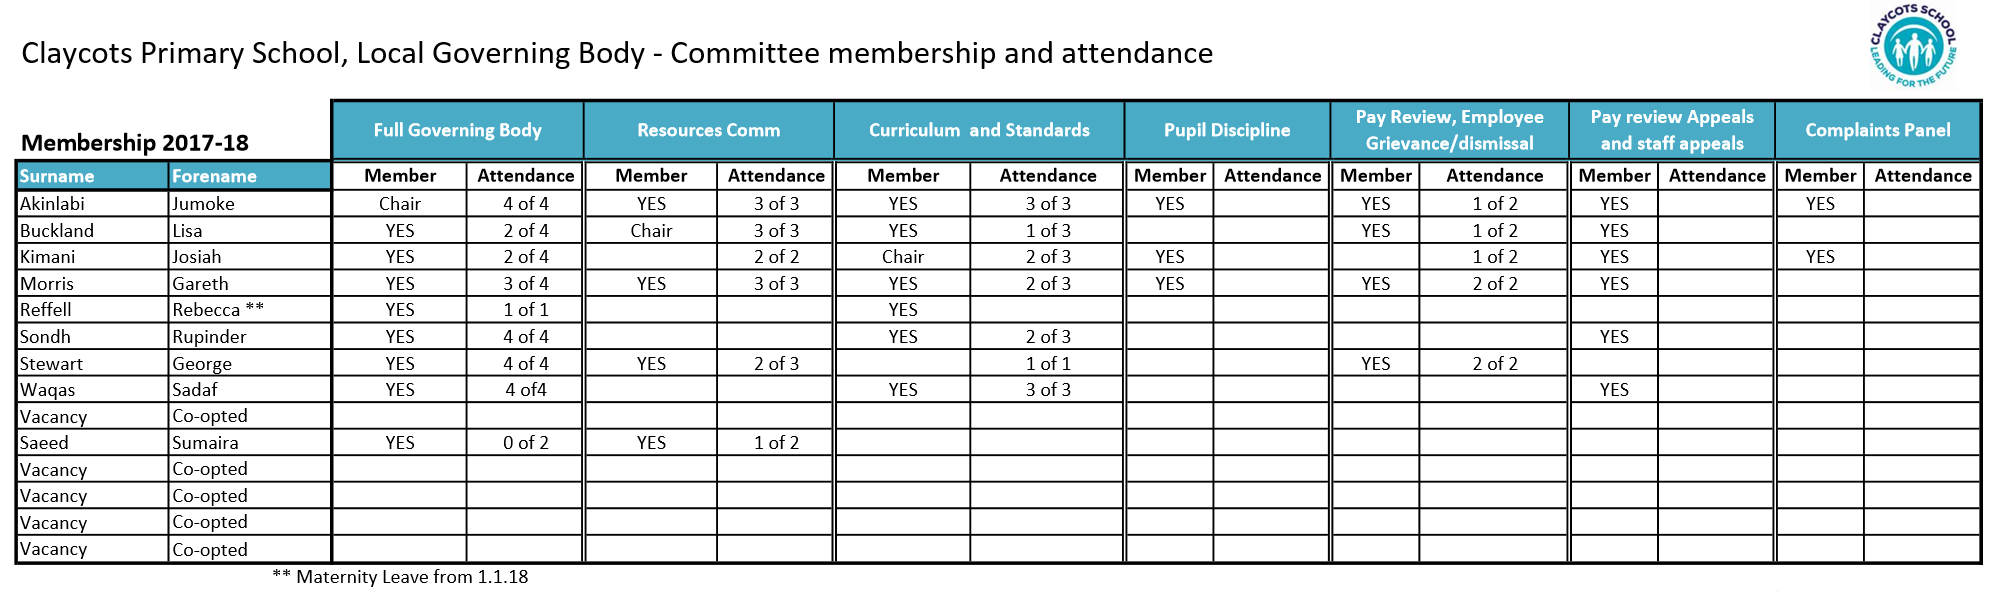 Committee membership and attendance 2017 18